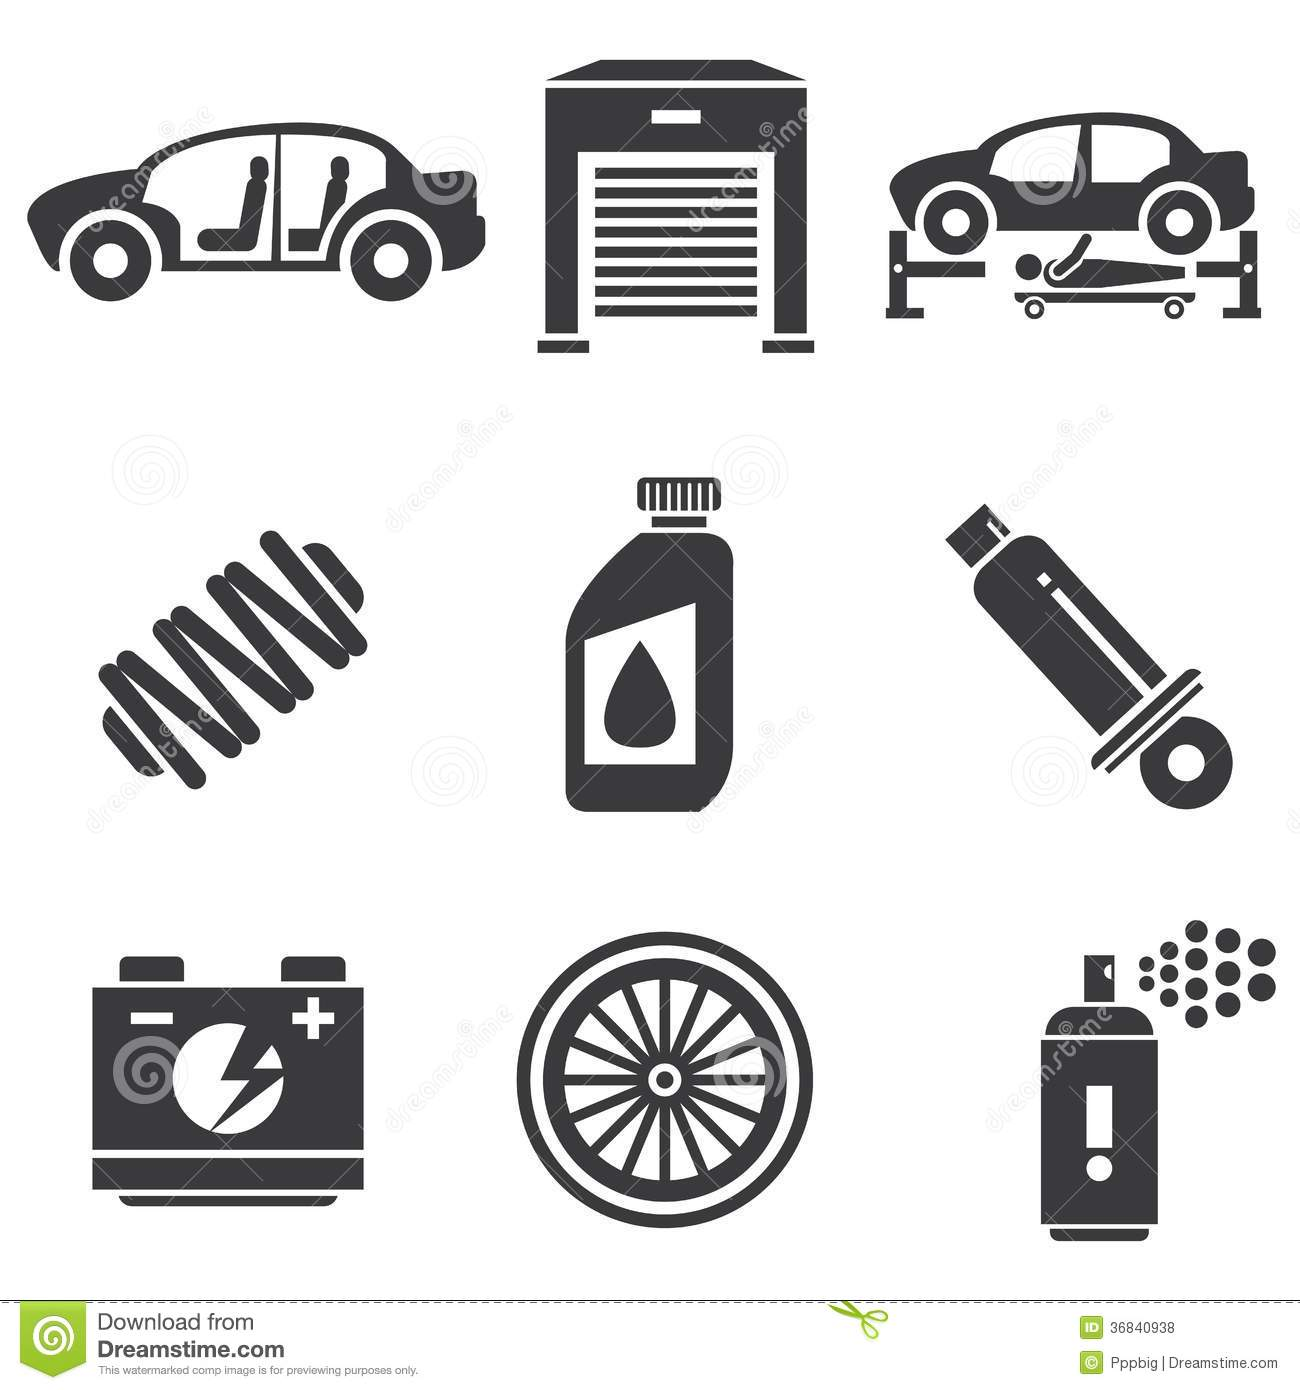 Automotive icons royalty free stock photos image 36840938 for Garage auto discount montpellier